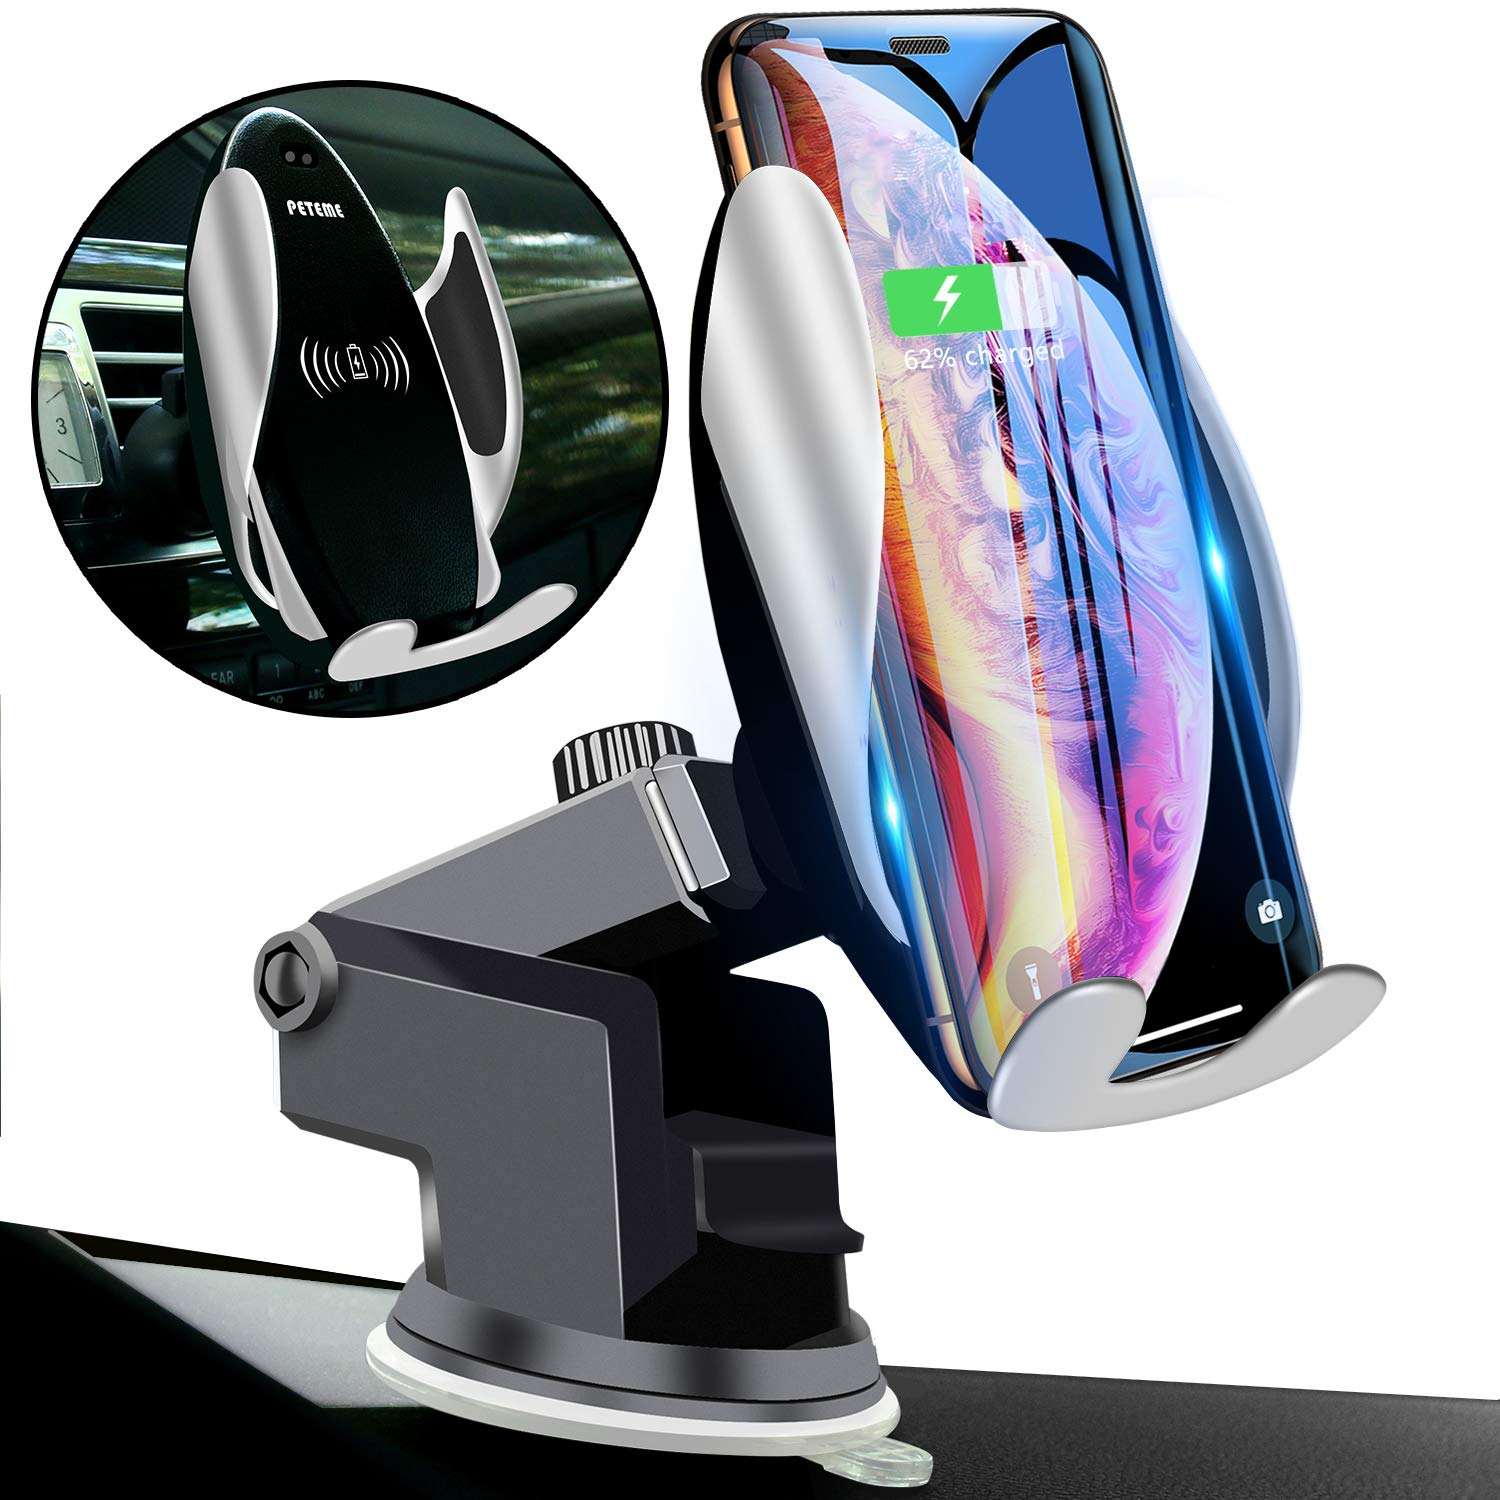 Qi Wireless Car Charger Mount Automatic Clamping Peteme Dashboard Air Vent Gravity Sensor Phone Holder Compatible with iPhone X/Xs MAX/XS/XR/X/8/8+,Samsung S10/S10+/S9/S9+/S8/S8+ by Peteme